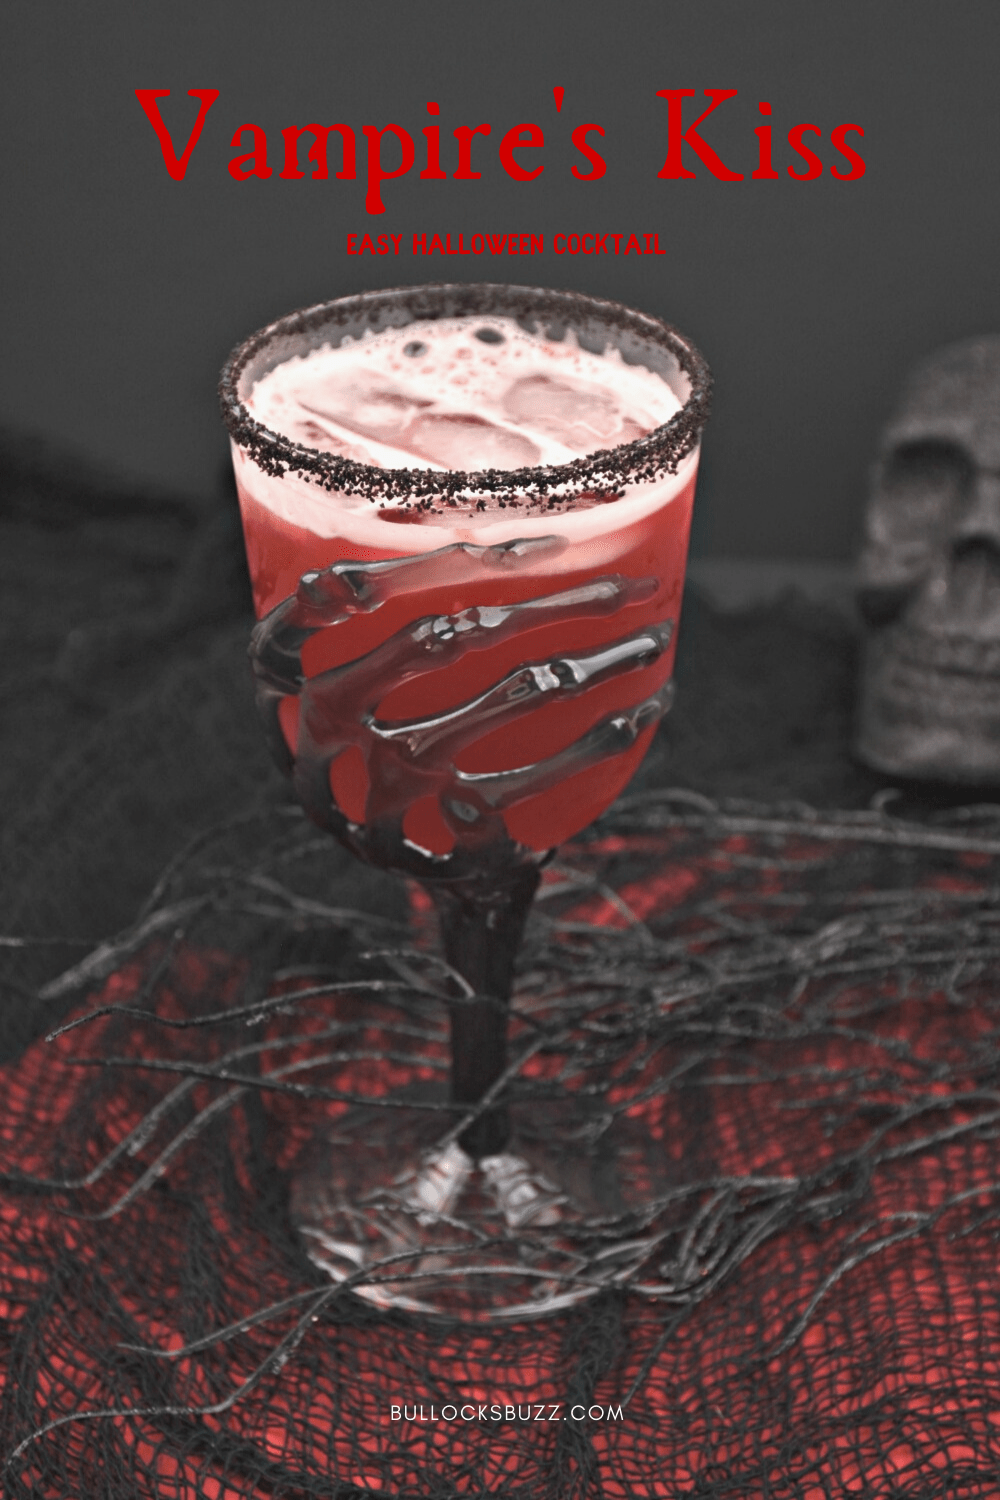 Vampire's Kiss is a fun and easy Halloween cocktail made with crangrape, pineapple juice, grenadine, and spiced rum for a spooky bite. Enjoy sinking your teeth into this Halloween drink! Get the recipe on the Bullock's Buzz blog!